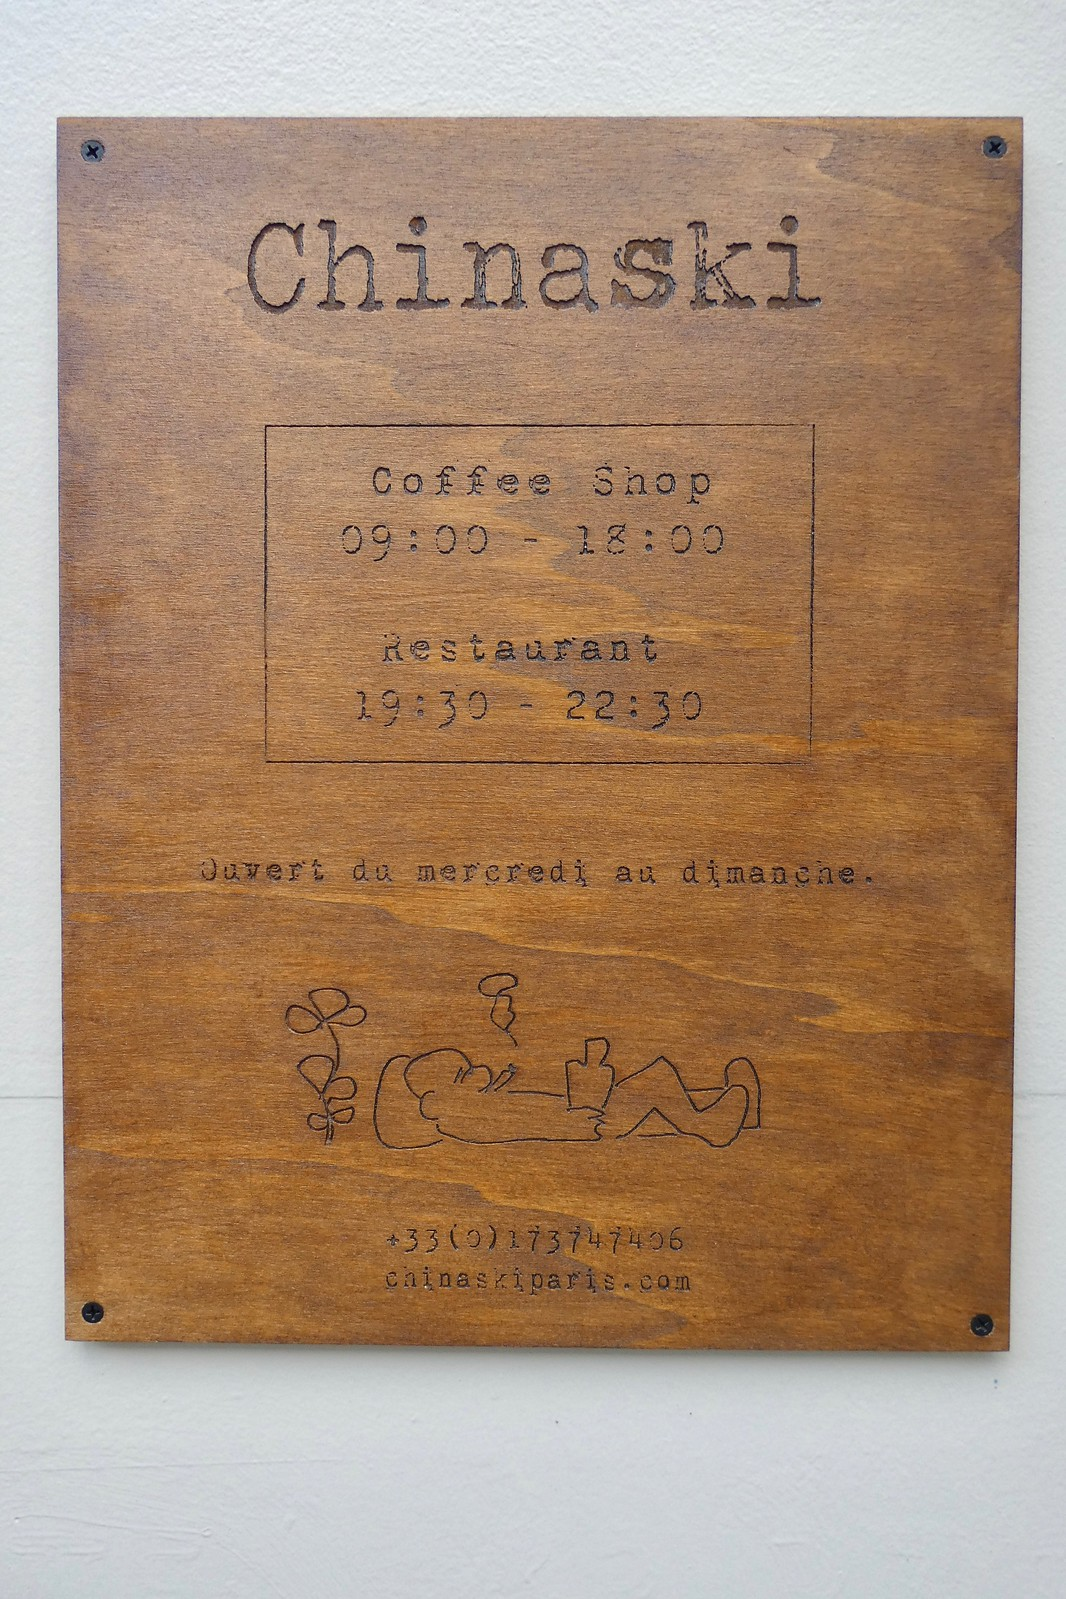 Restaurant Chinaski, Paris